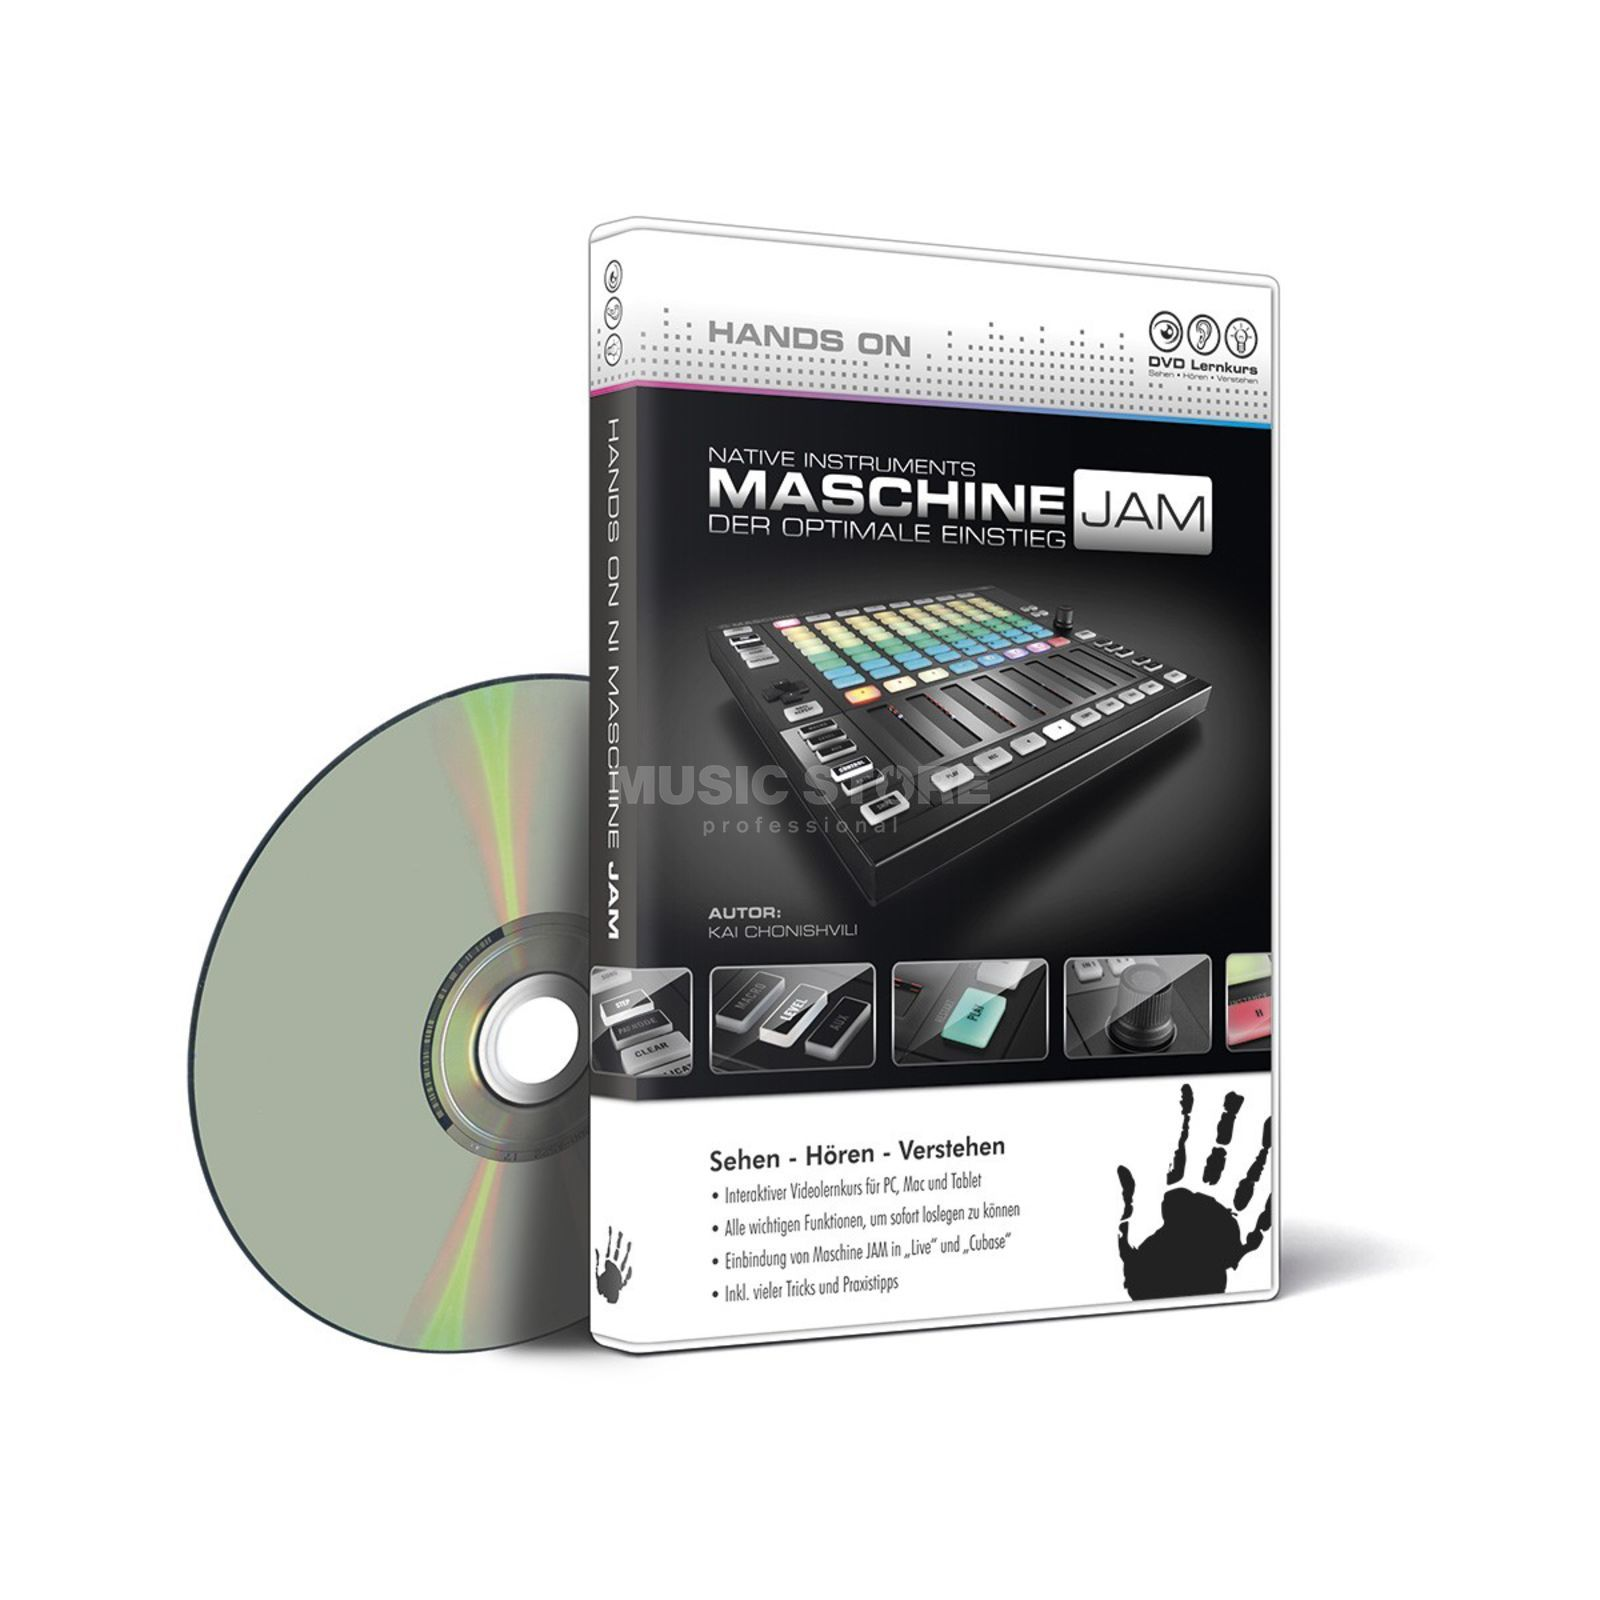 DVD Lernkurs Hands on Maschine JAM Product Image